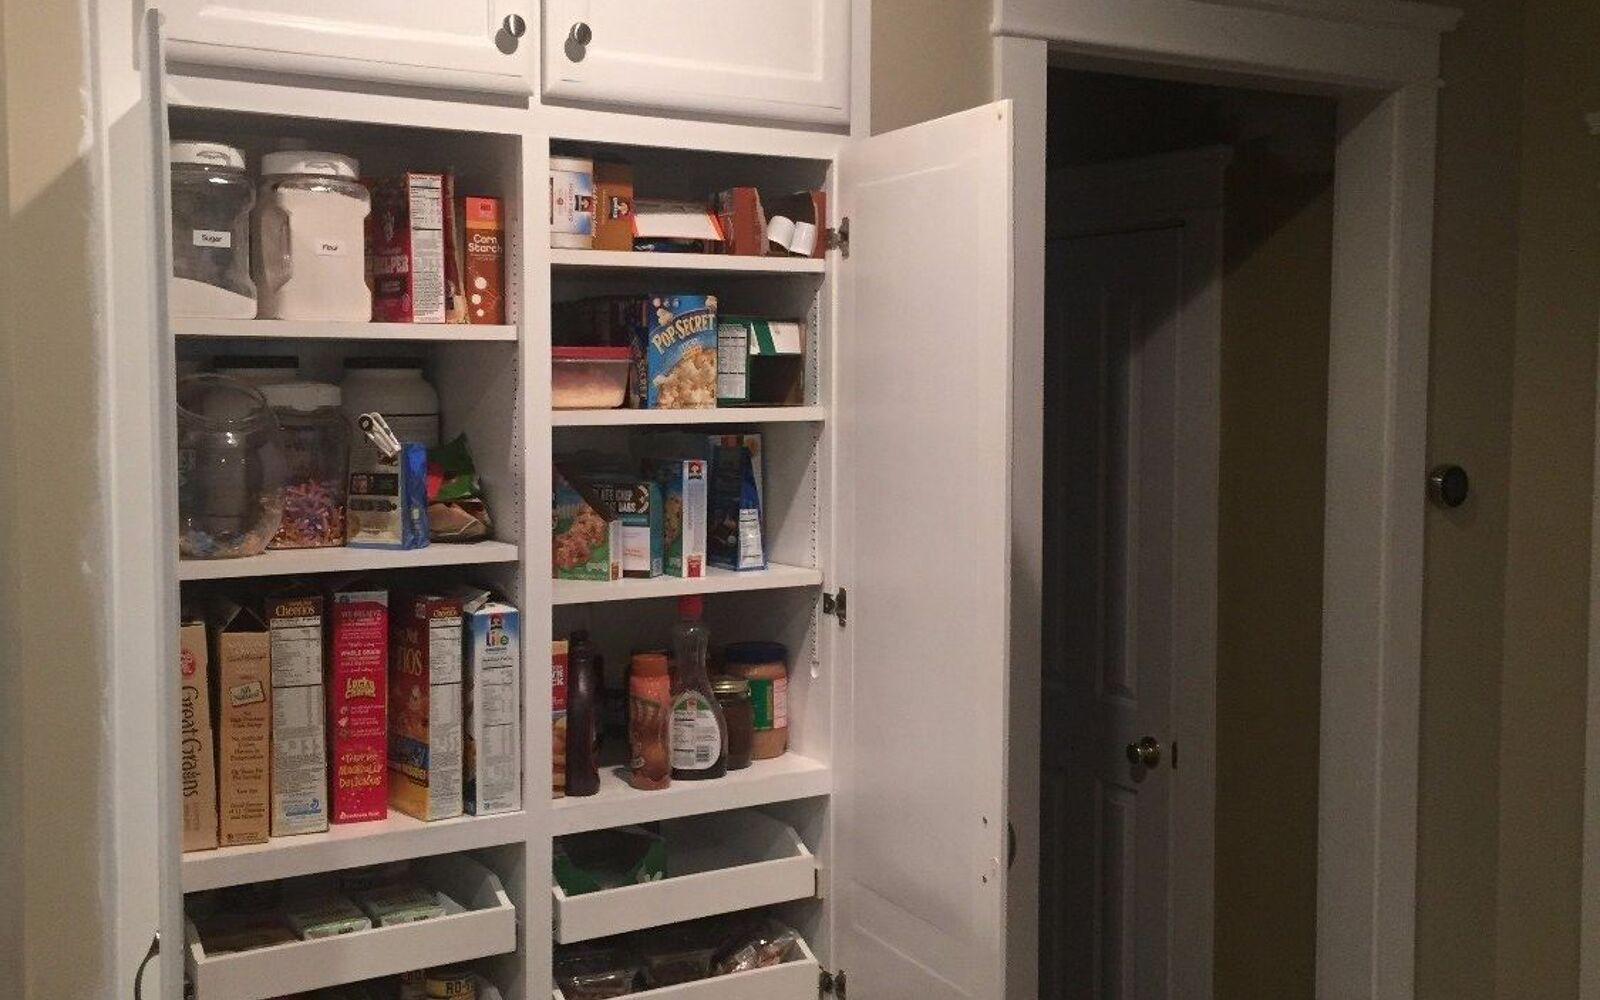 s 15 pinterest worthy pantries that eliminate search time for your favo, Build A Custom Pantry For Your Favorite Foods